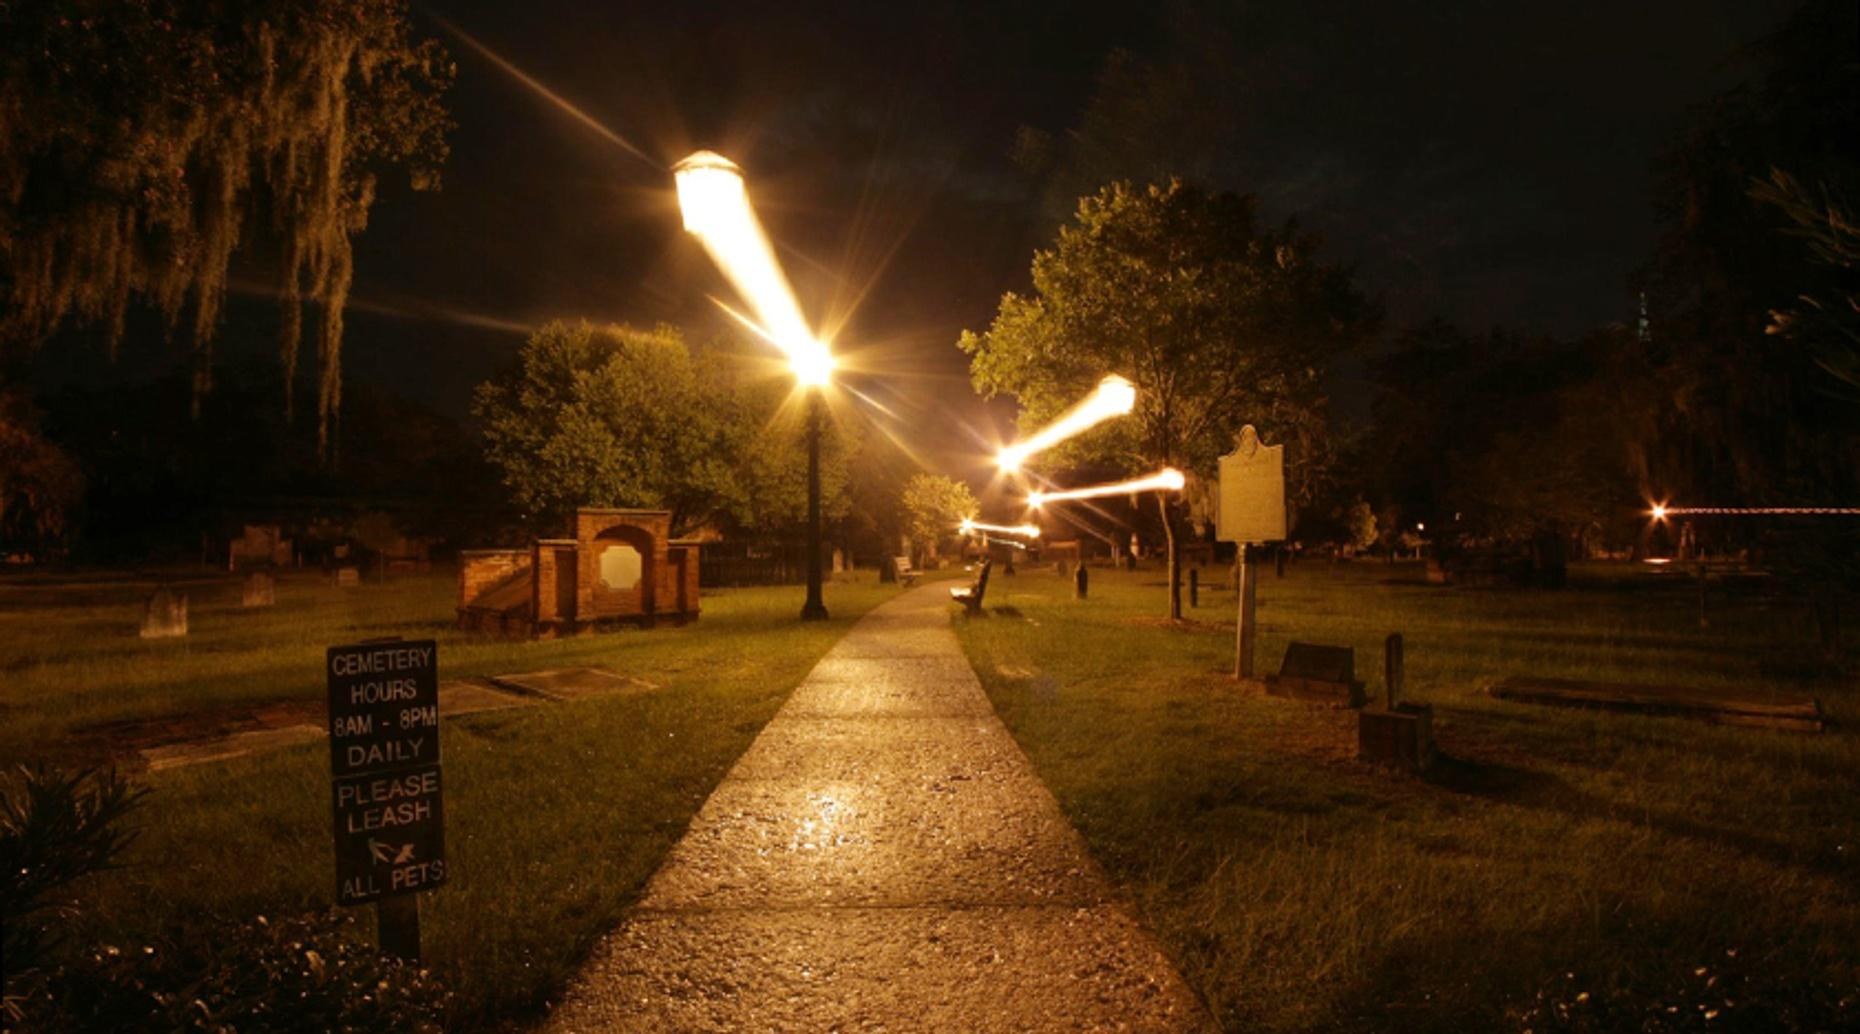 Guided Ghost Biking Tour from a Cemetery in Provo